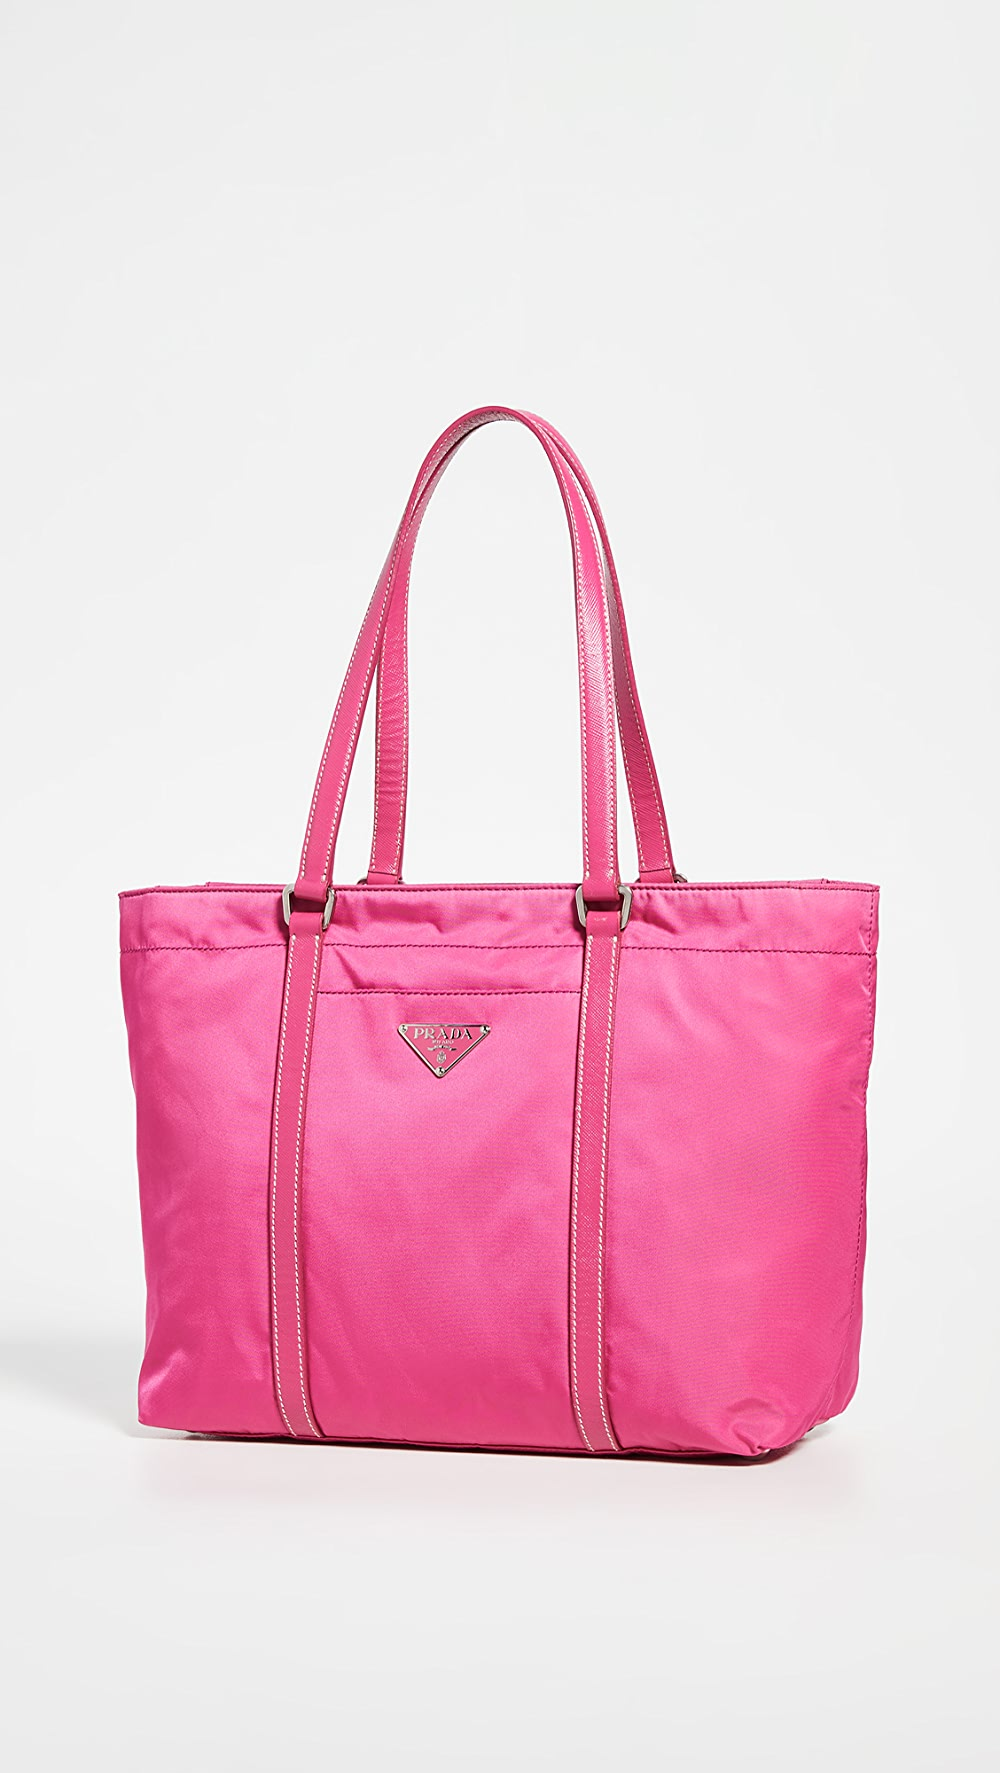 Active What Goes Around Comes Around - Prada Pink Tessuto Tote Relieving Heat And Thirst.